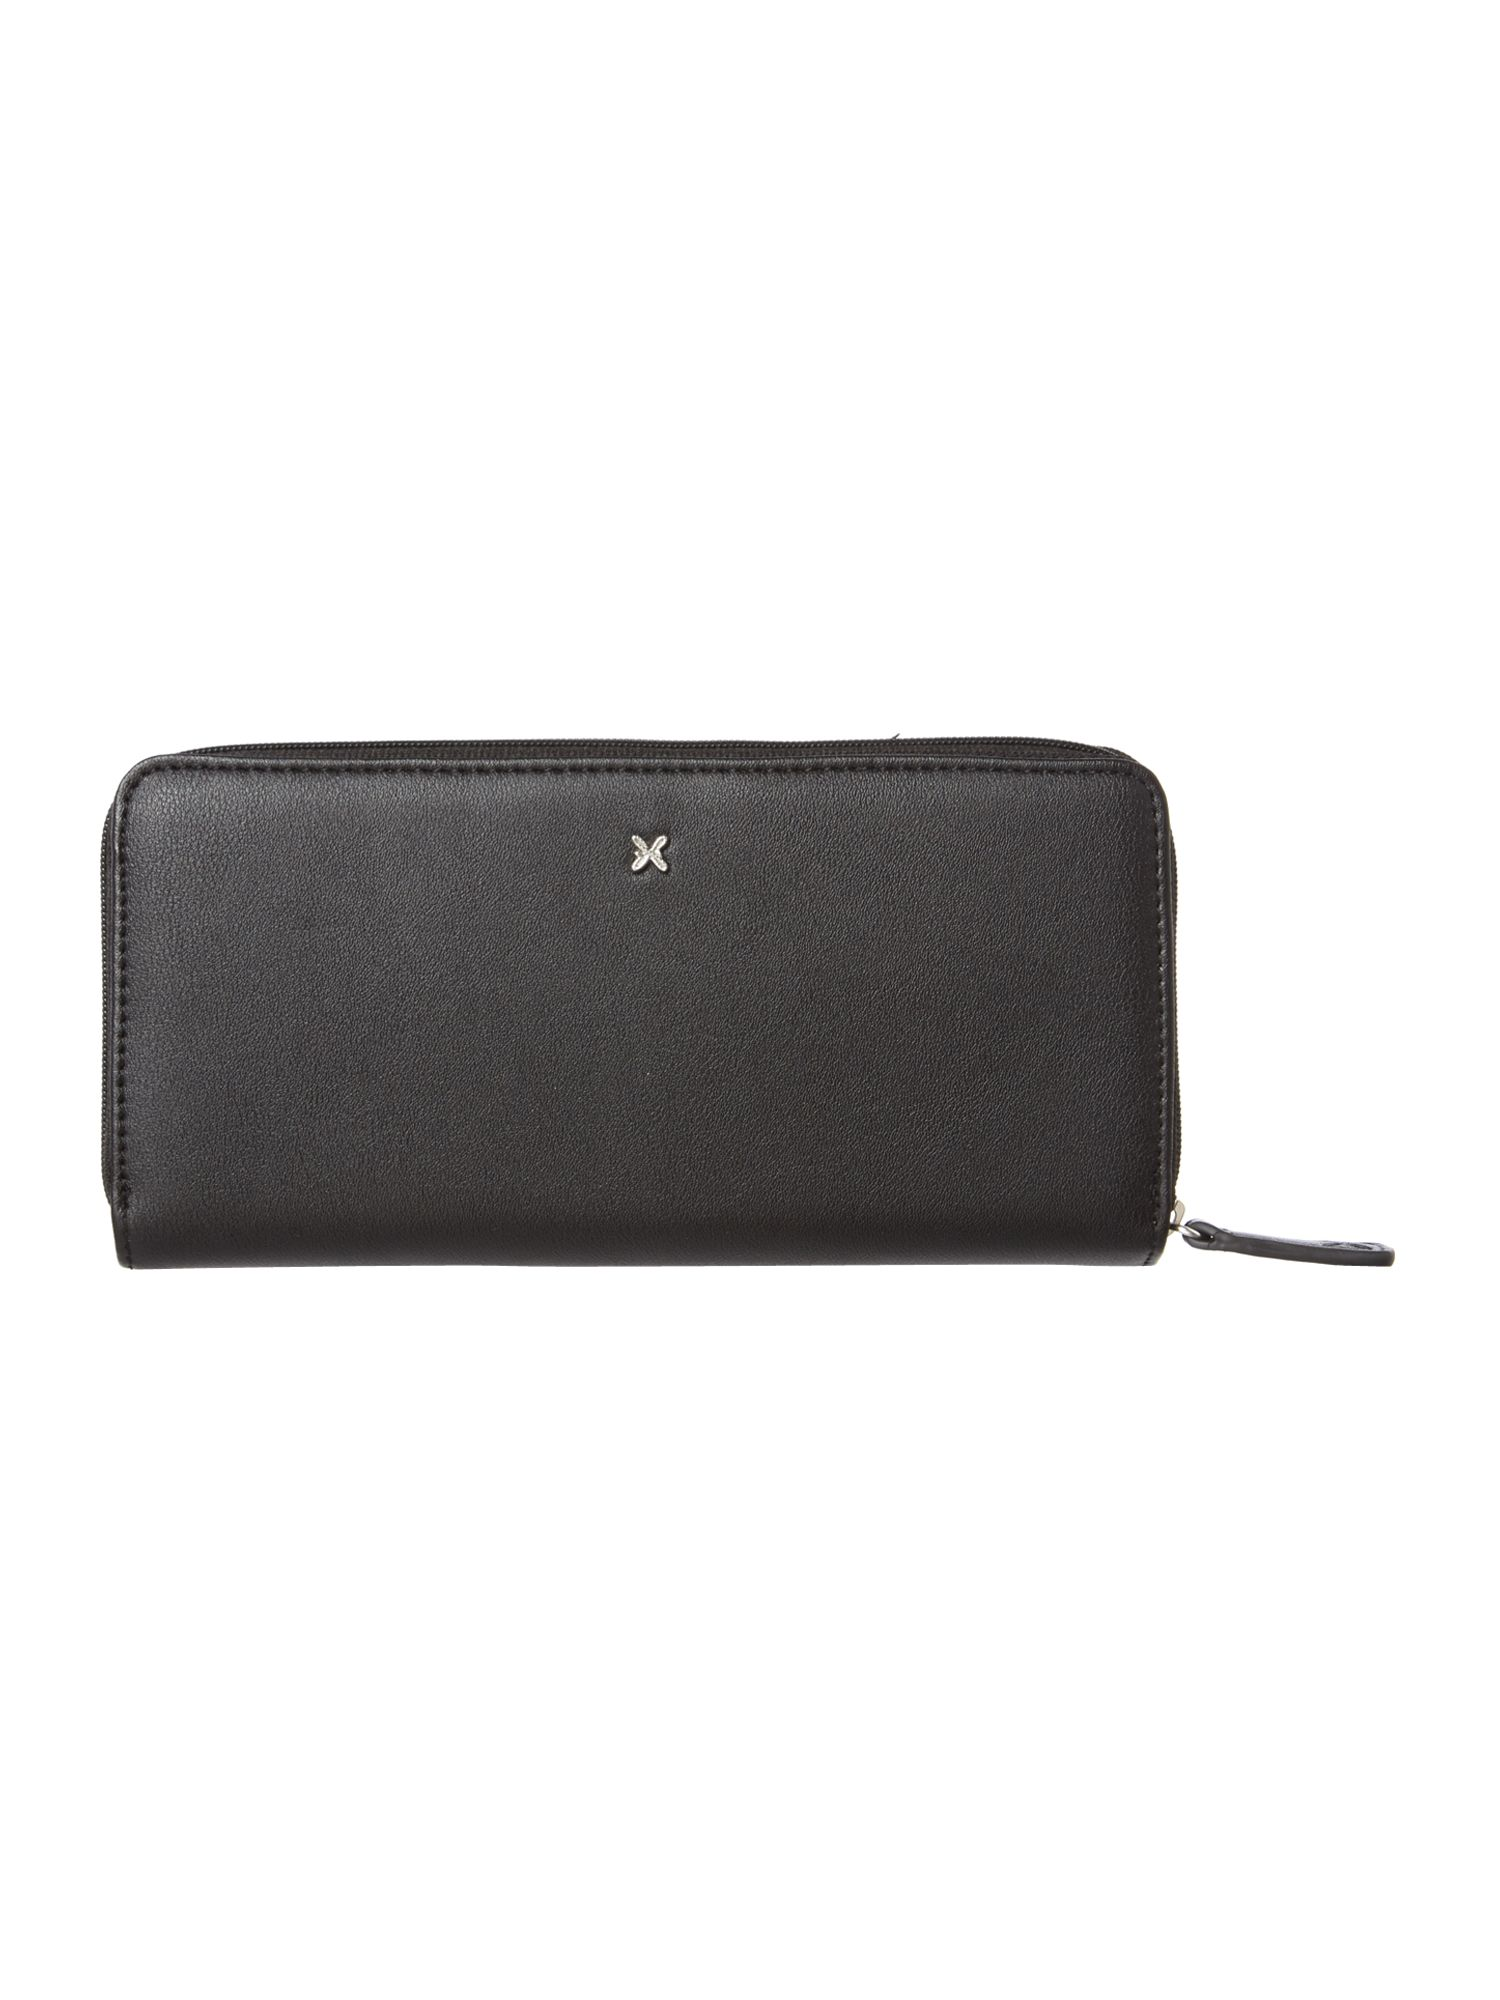 Vera large black zip around purse